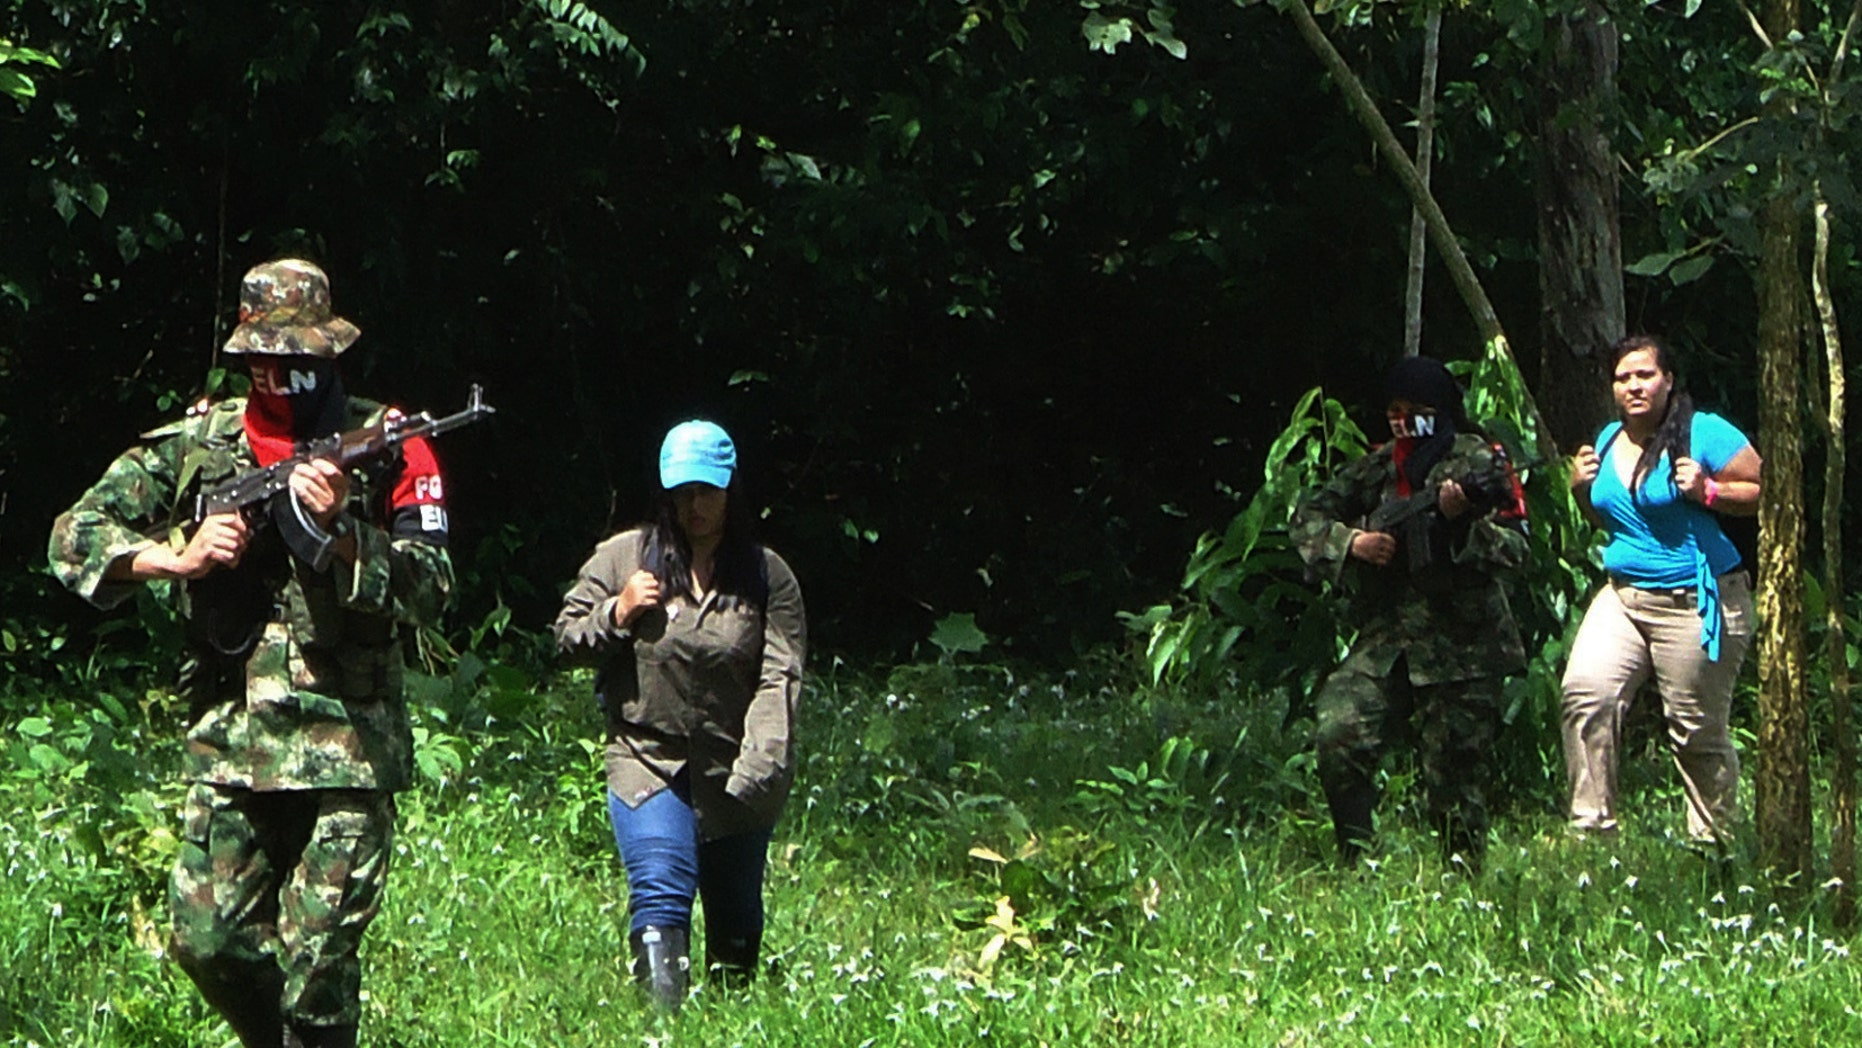 Aug. 13, 2012: Members of the Colombian rebel group National Liberation Army, or ELN,  escort Gina Paola Uribe Villamizar, 32, second from left, and Elida Parra Alfonso, 33, right, during their released in Fortul, northeast of Bogota, Colombia.